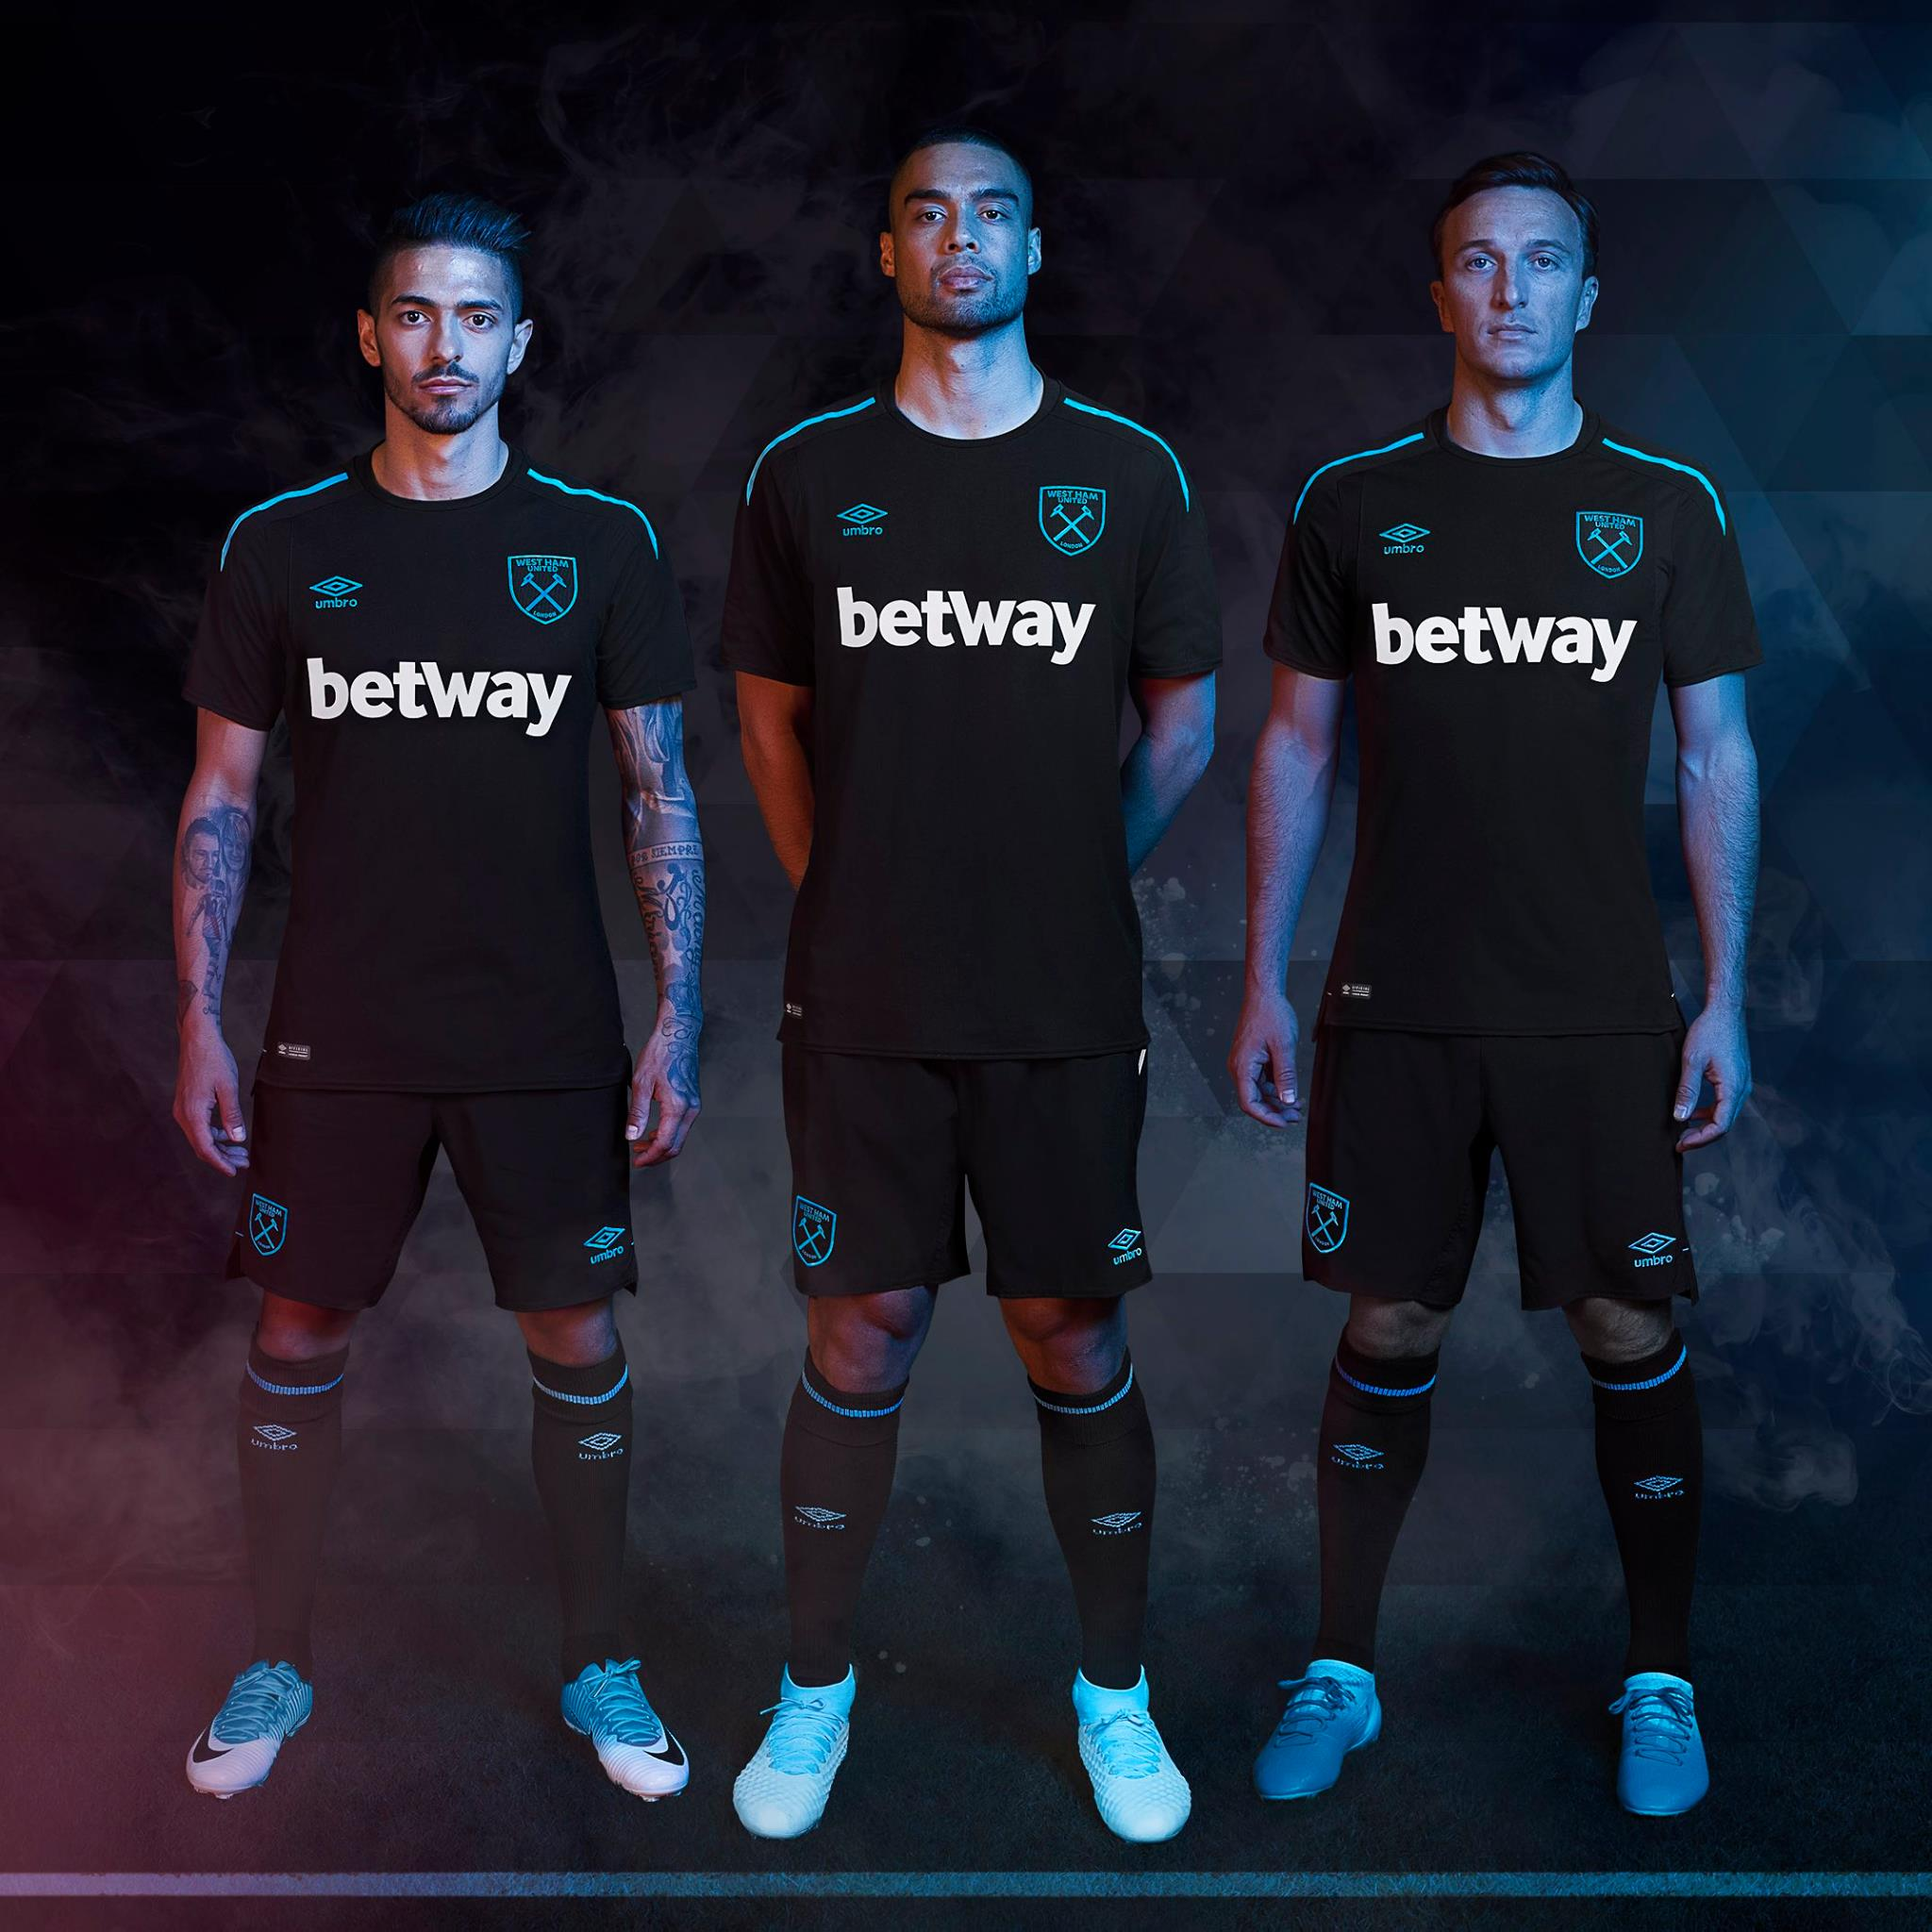 west_ham_united_2017_2018_umbro_away_kit_banner